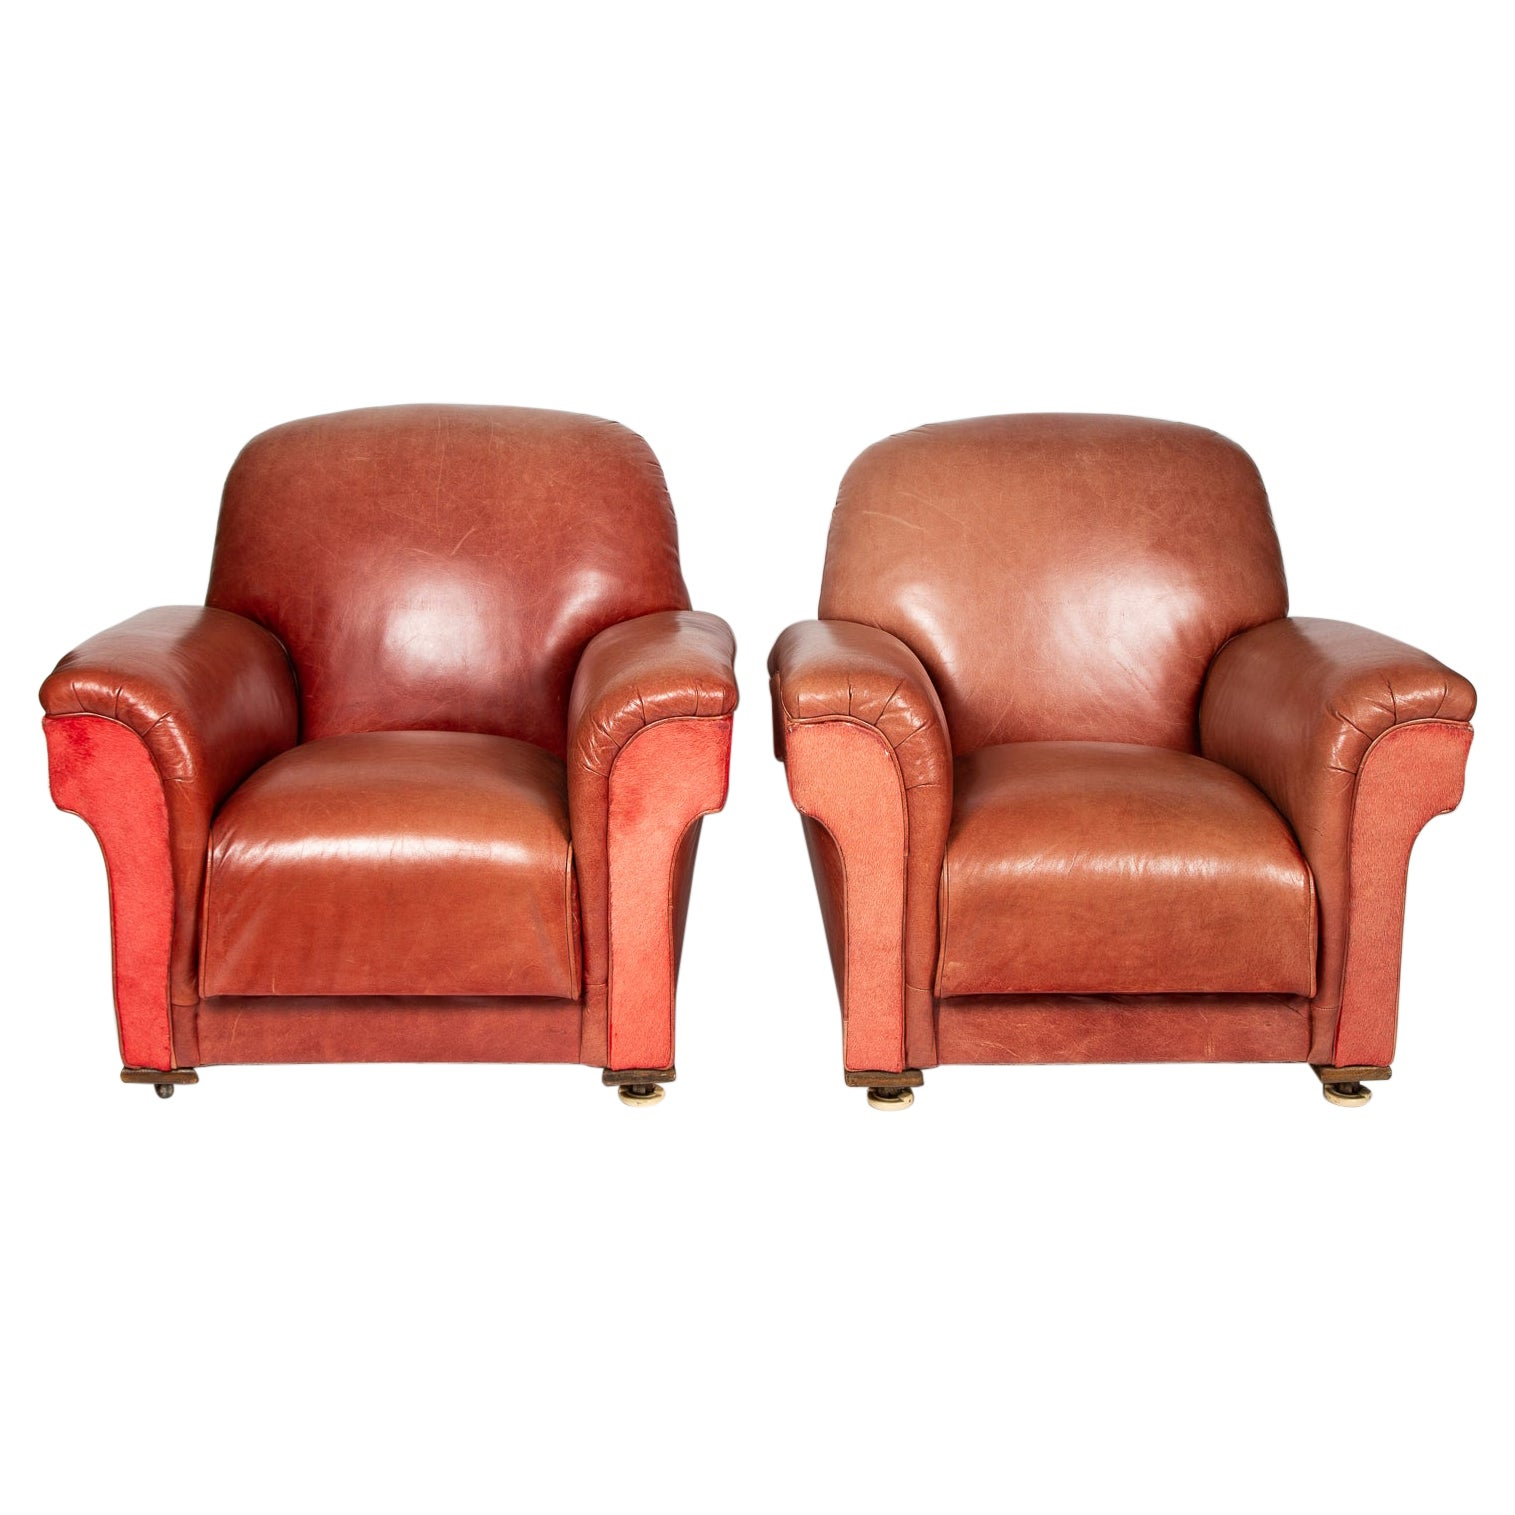 Pair of Two Tone Red Leather Club Chairs